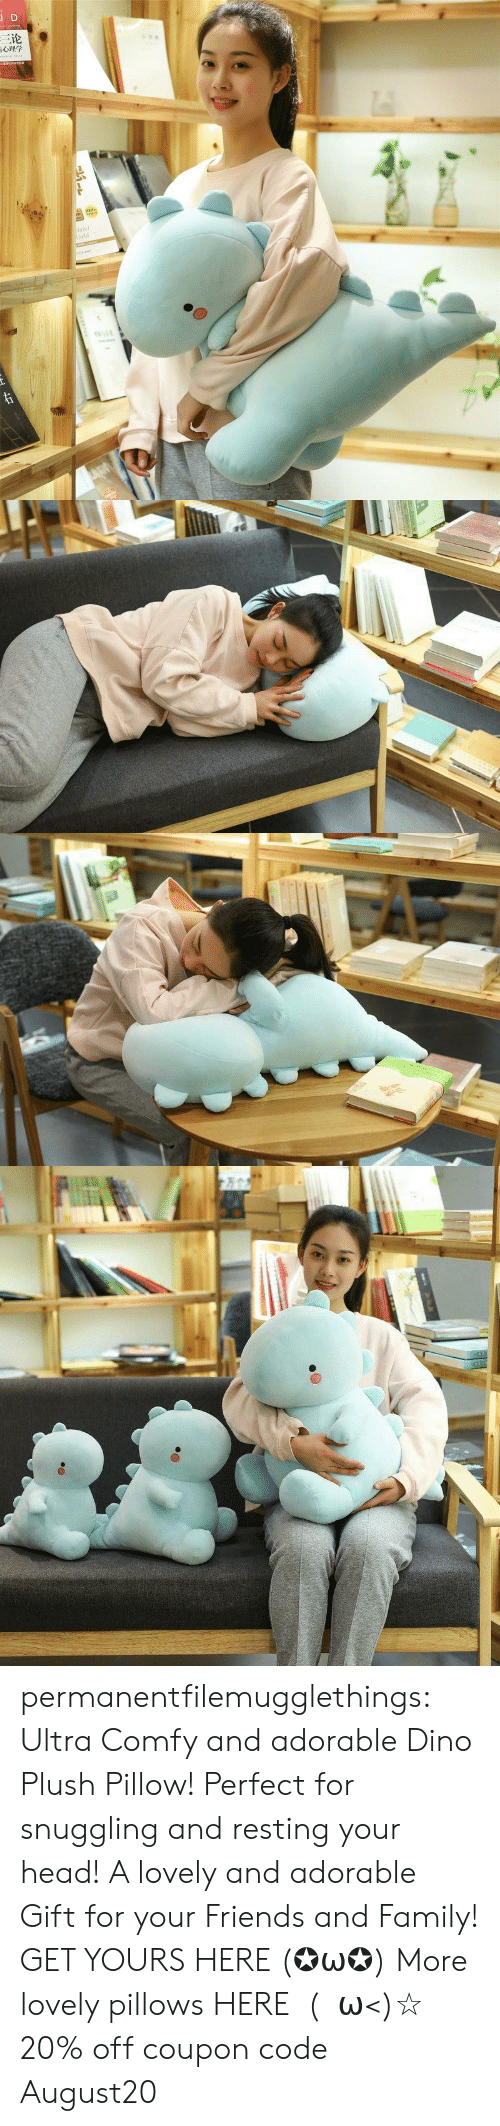 Resting: JD  三论  laint  orld  TDNAR  ww.e permanentfilemugglethings:  Ultra Comfy and adorable Dino Plush Pillow! Perfect for snuggling and resting your head! A lovely and adorable Gift for your Friends and Family! GET YOURS HERE (✪ω✪) More lovely pillows HERE  (・ω<)☆ 20% off coupon code:August20